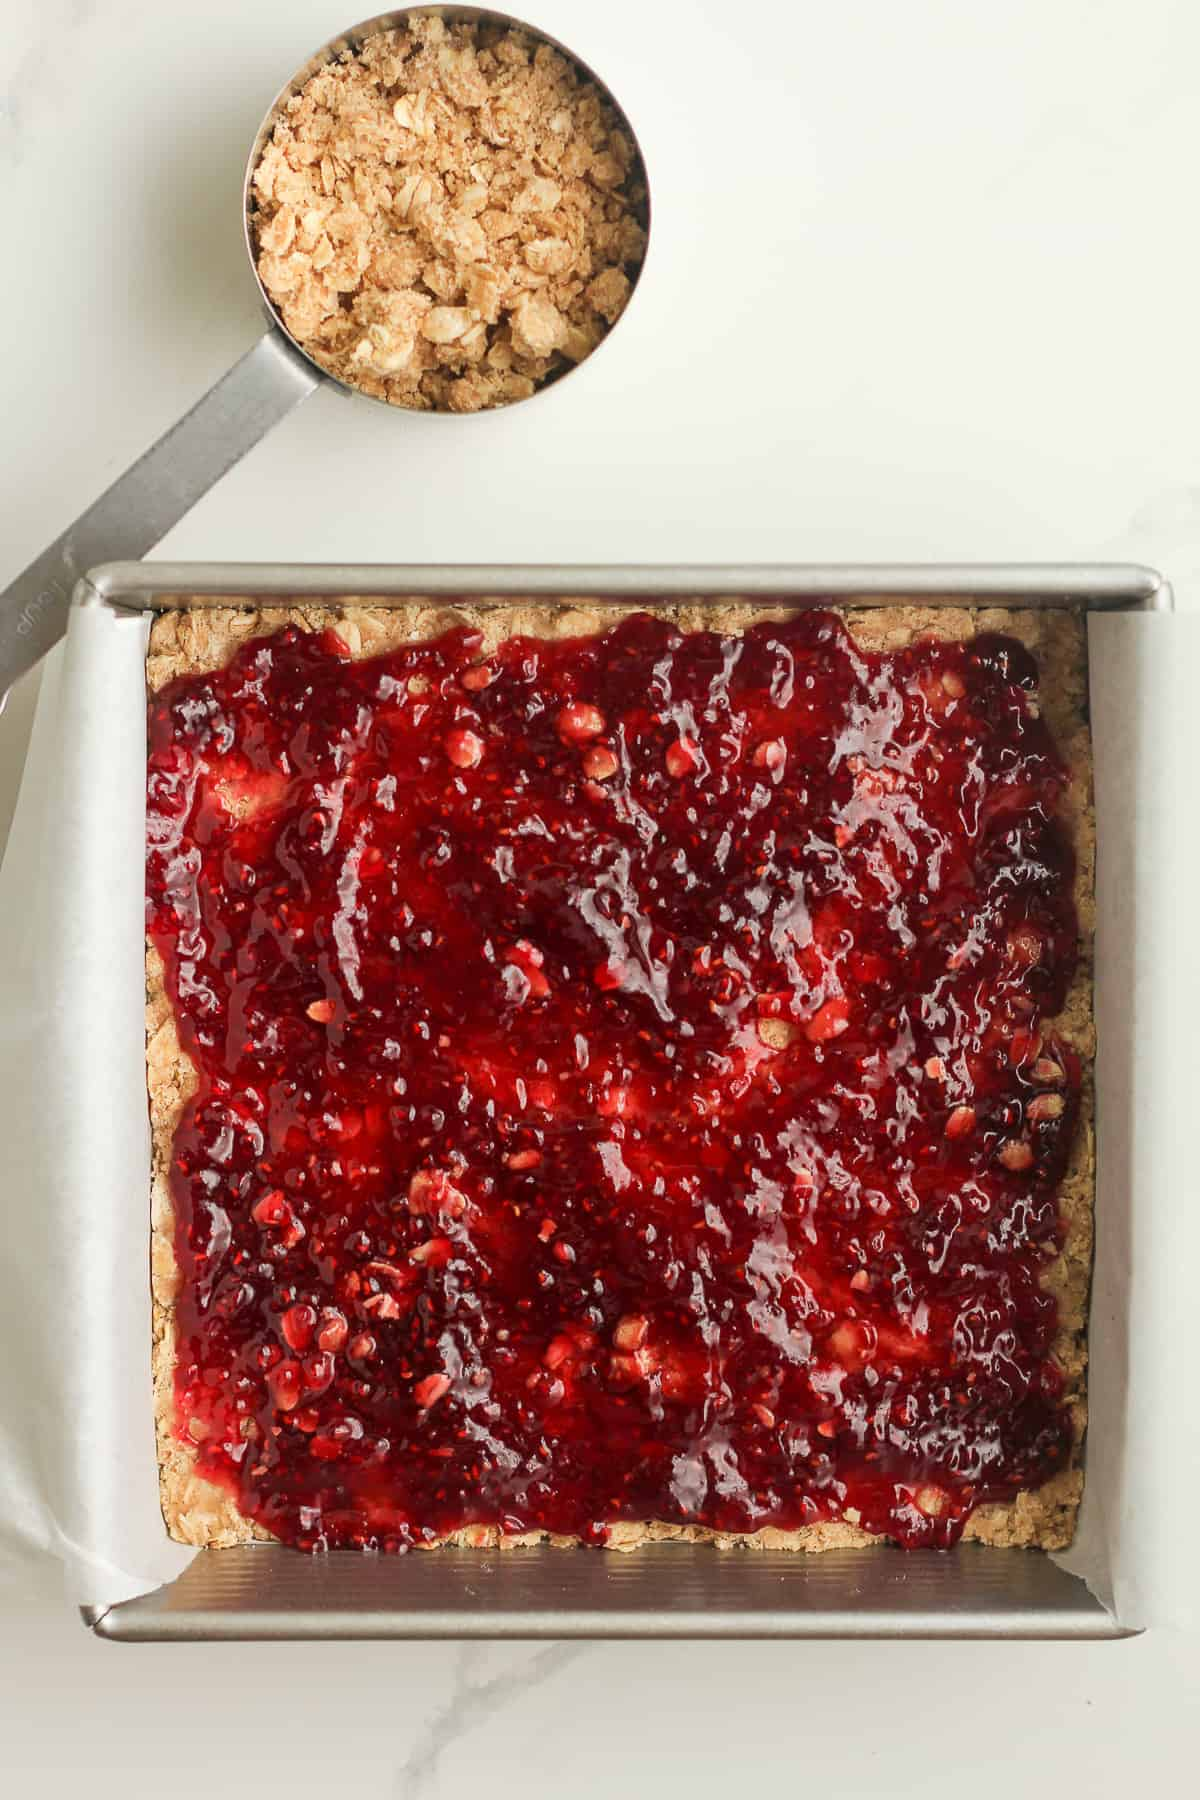 The oatmeal bars with the jam layer on top.